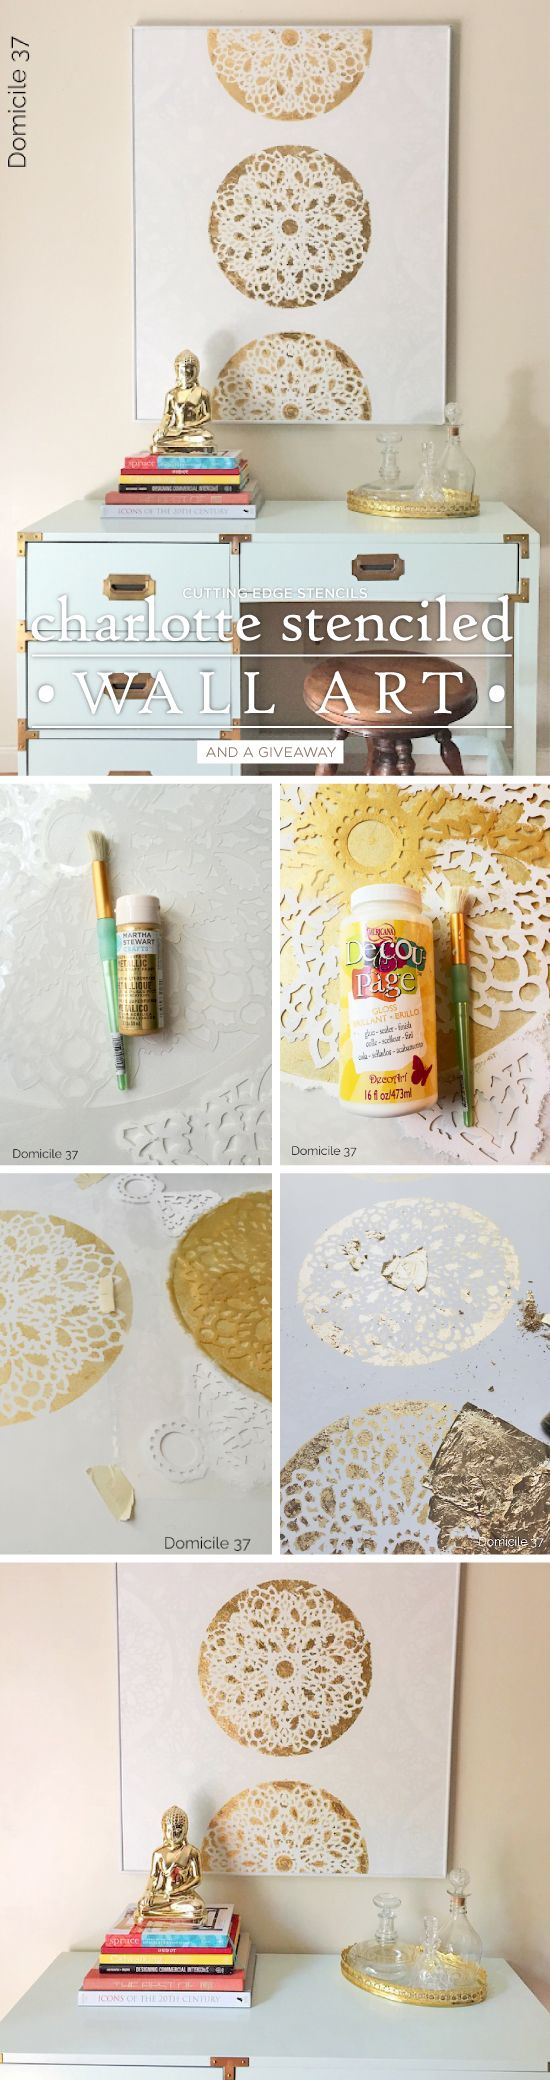 Best 10 Diy Wall Art Ideas On Pinterest Diy Artwork Diy Wall Decor And Diy Painting